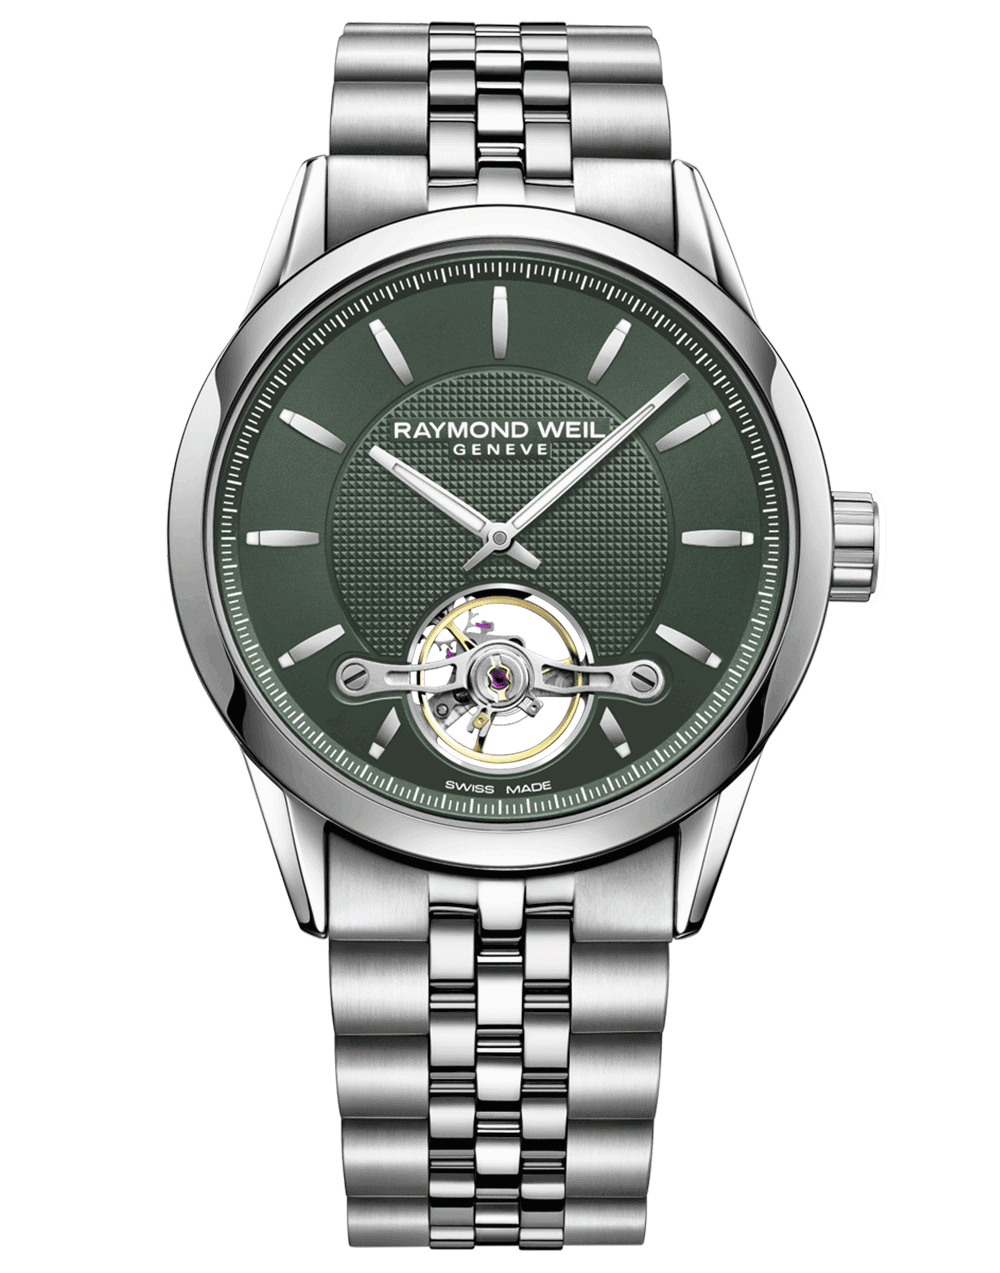 RAYMOND WEIL green dial stainless steel RW1212 freelancer